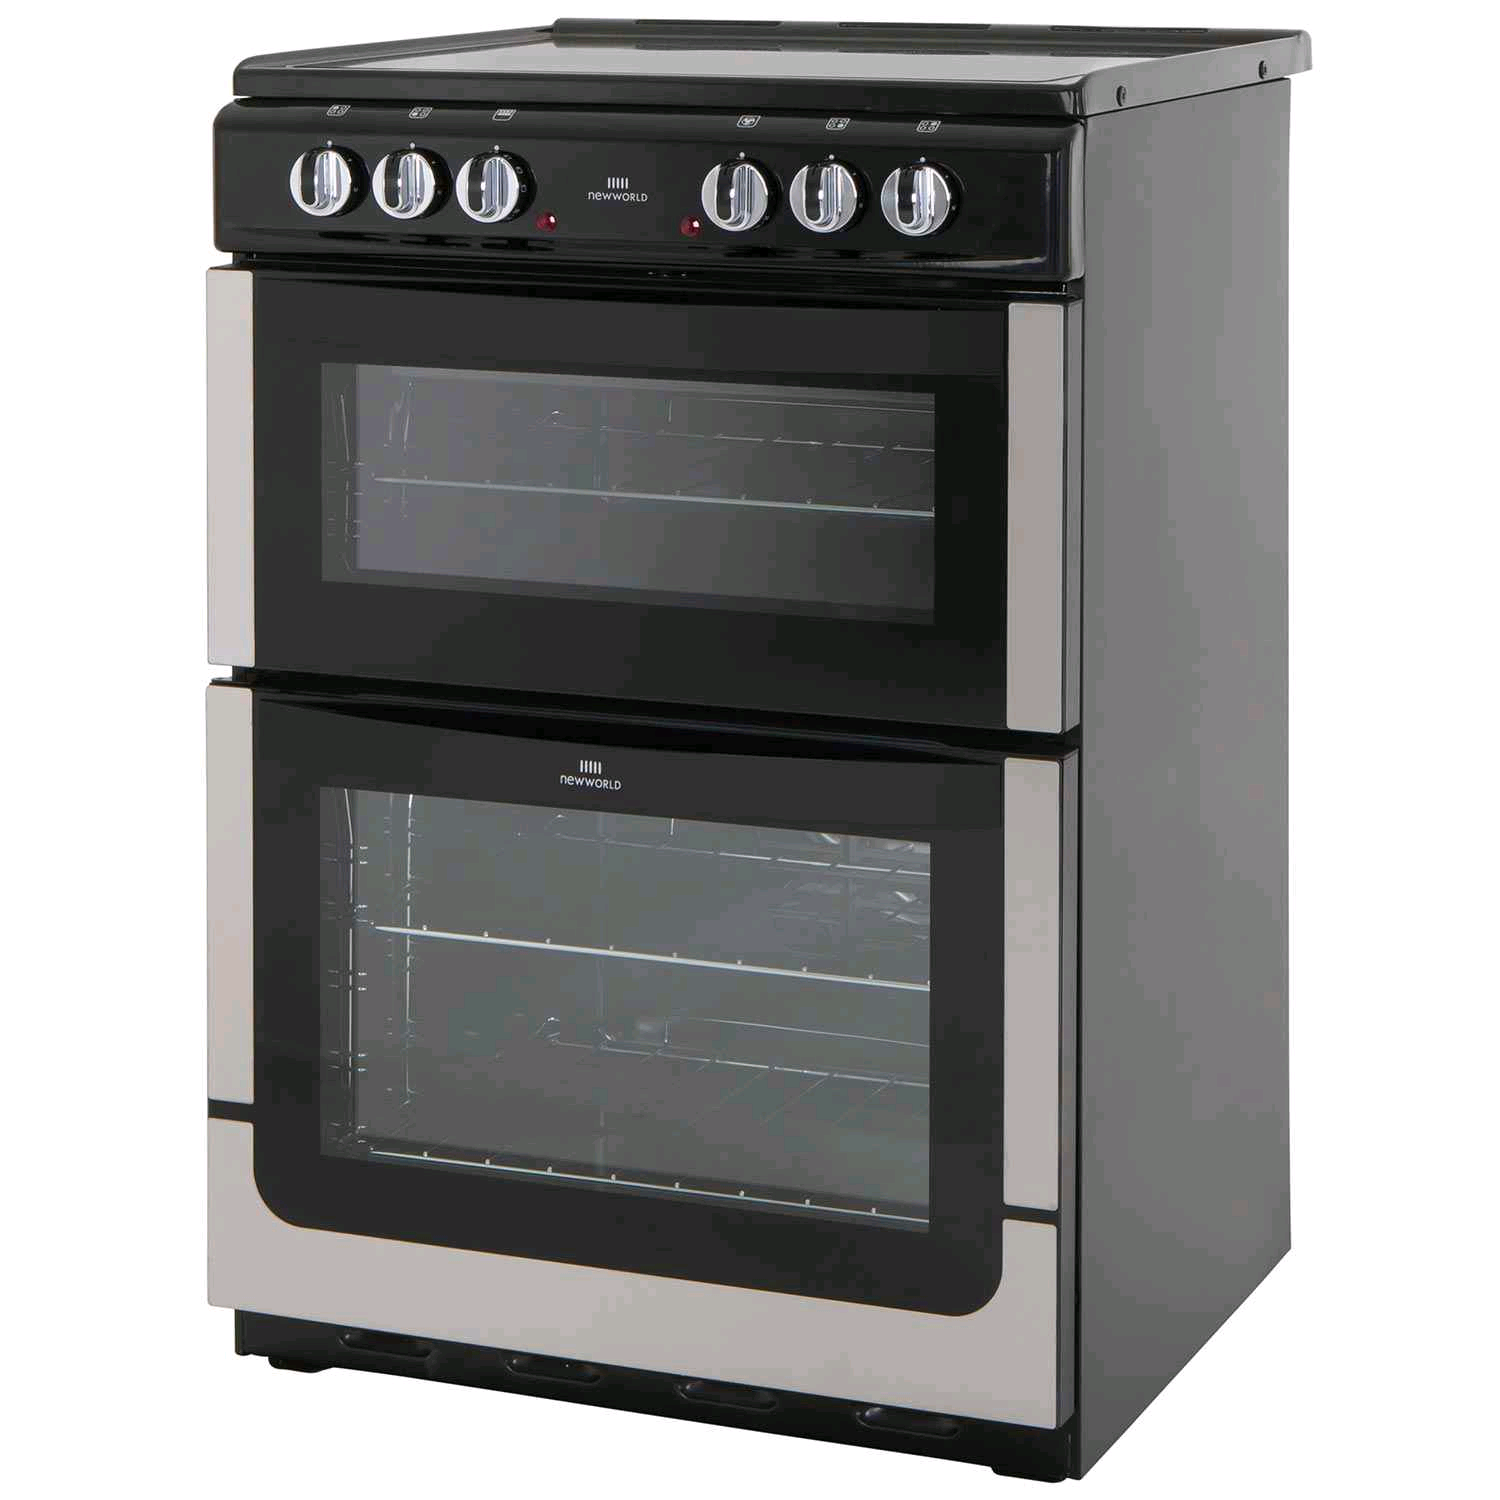 New World Electric Cooker 60cm Silver Double Oven